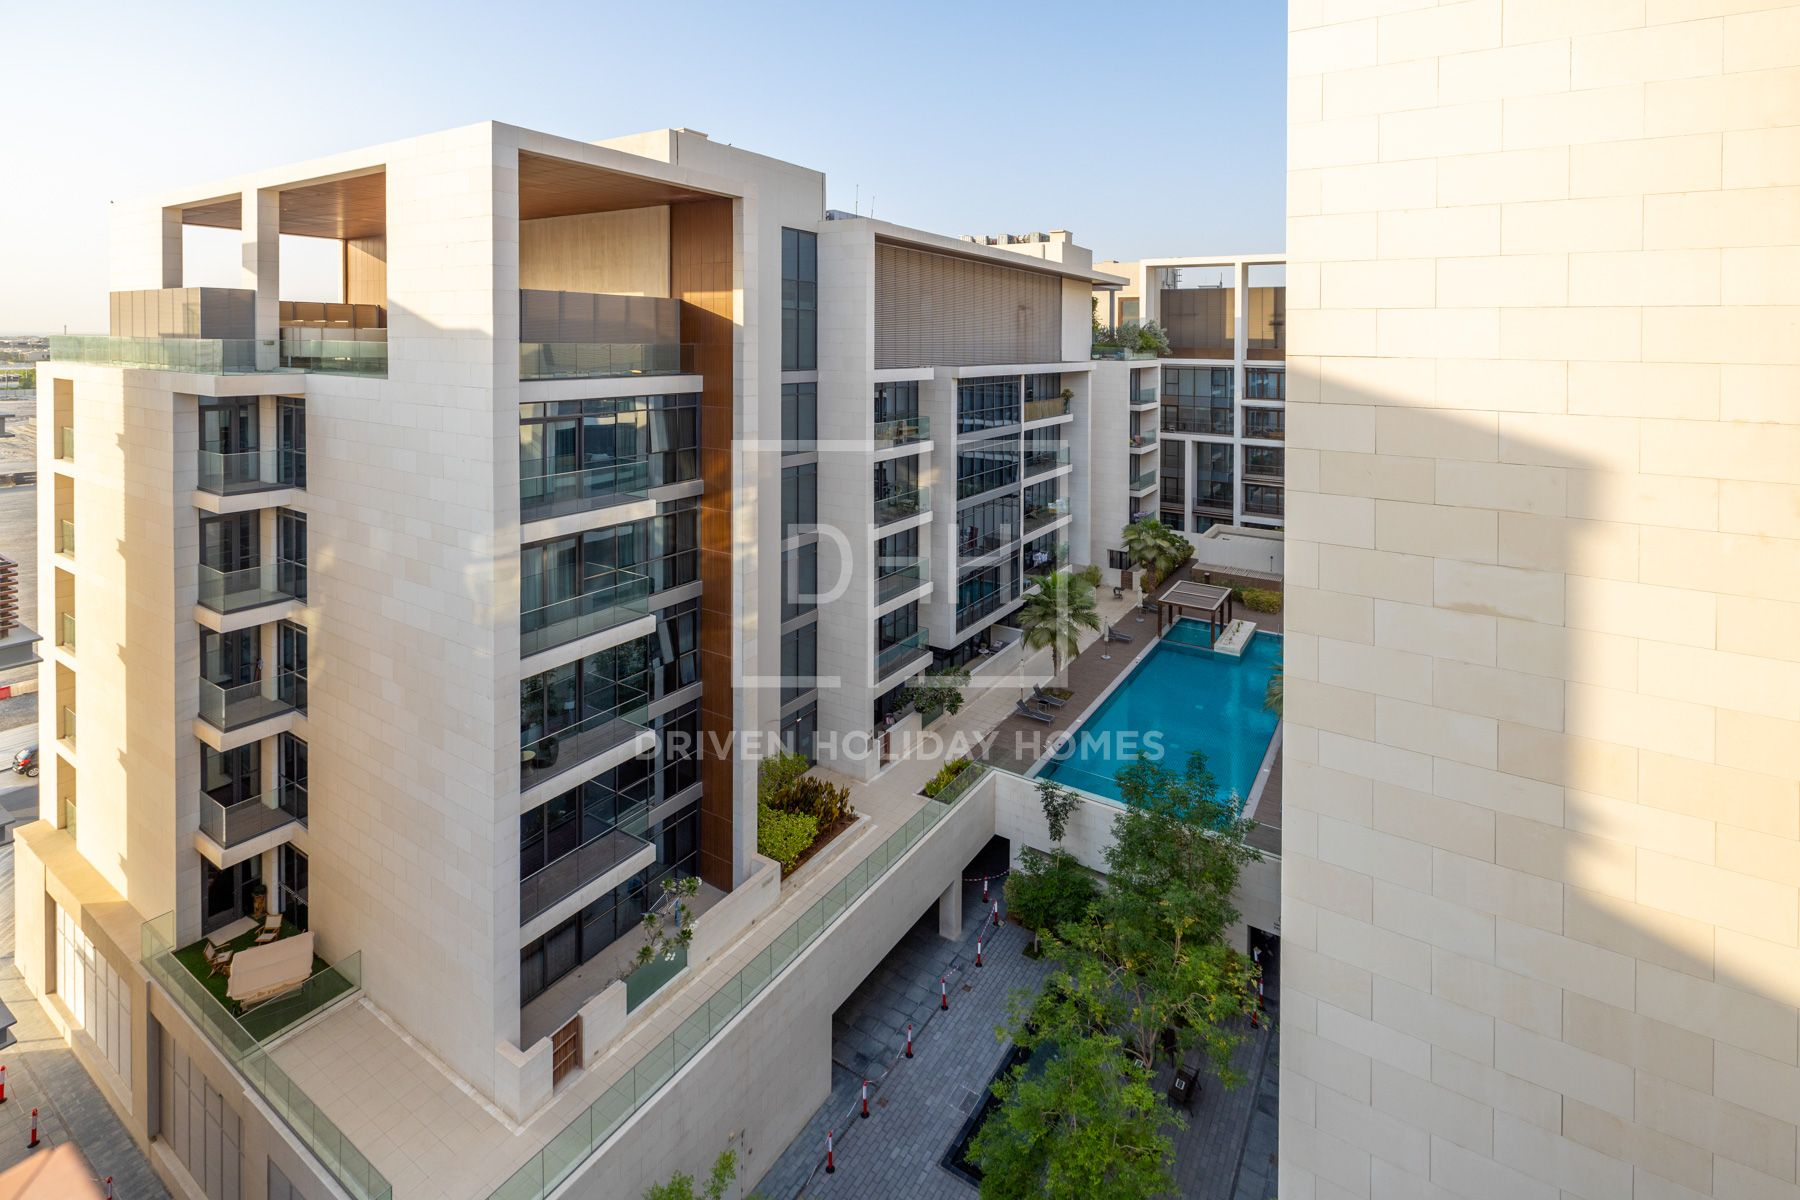 Clean and Modern Design | Courtyard View